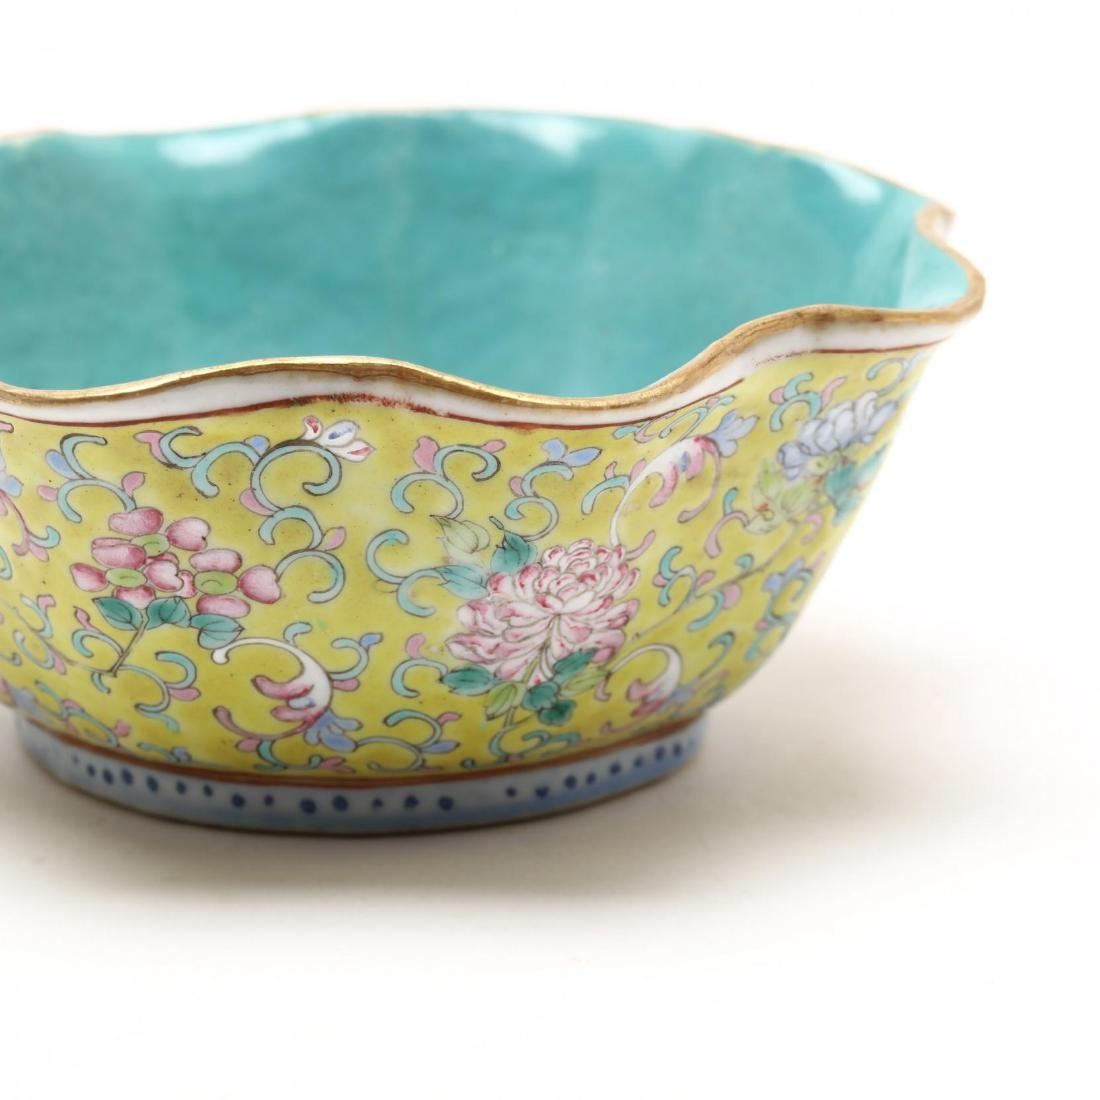 A Matched Pair of Chinese Porcelain Scalloped Bowls - 5